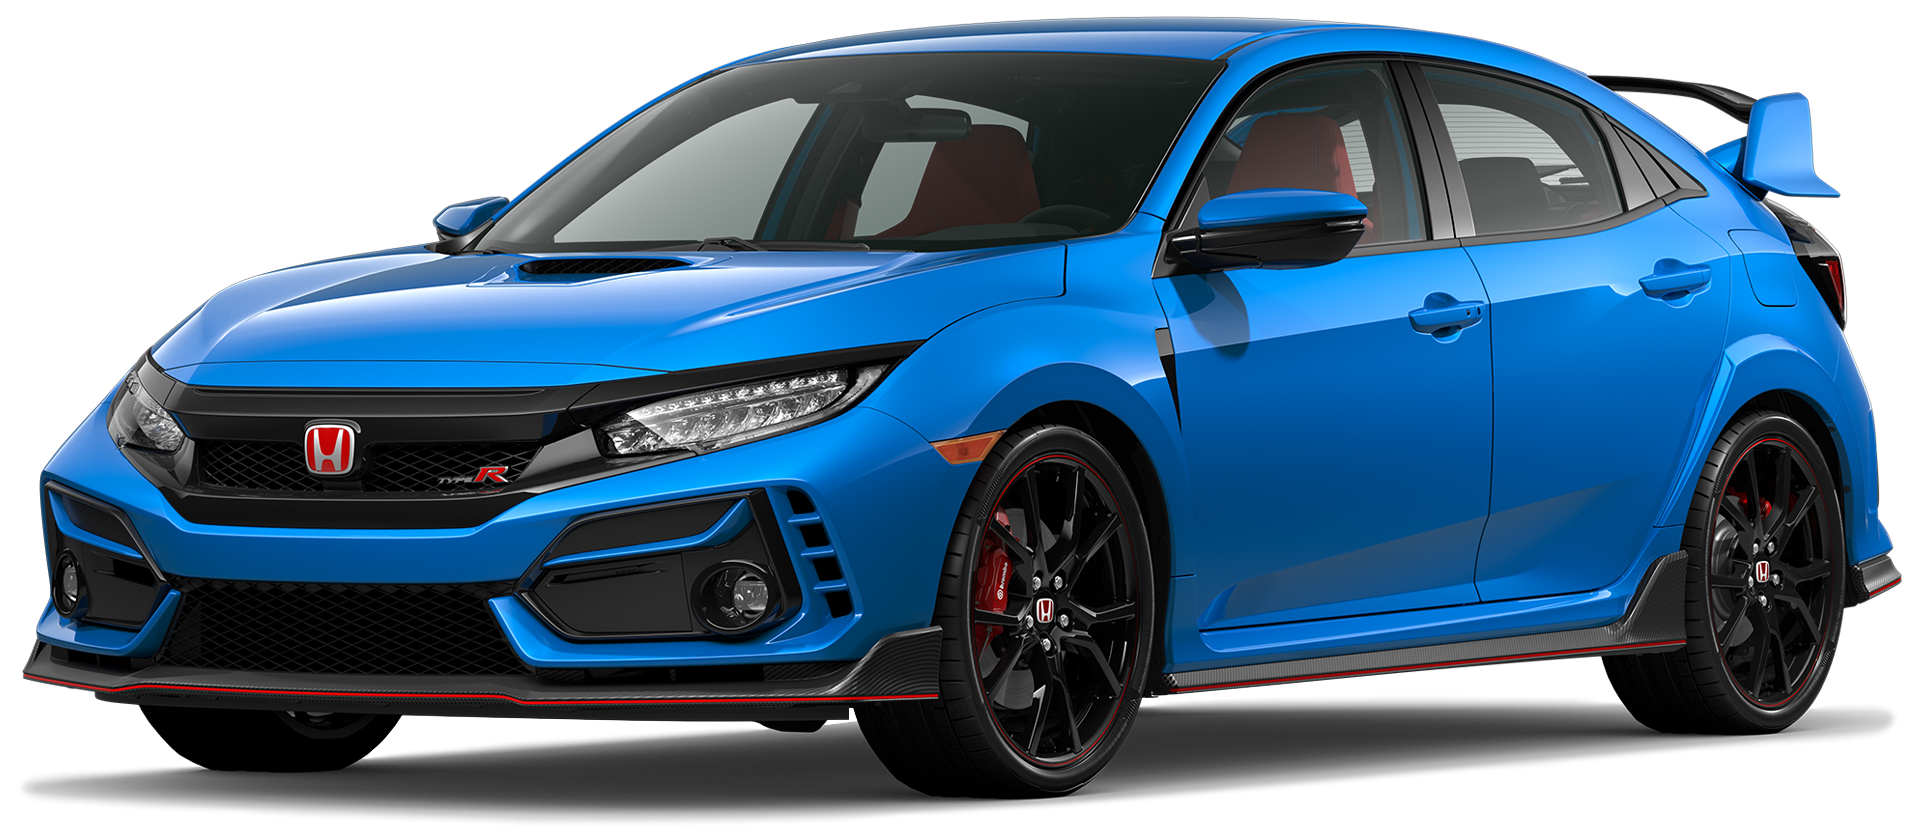 2020 Honda Civic Type R Incentives, Specials & Offers in ...